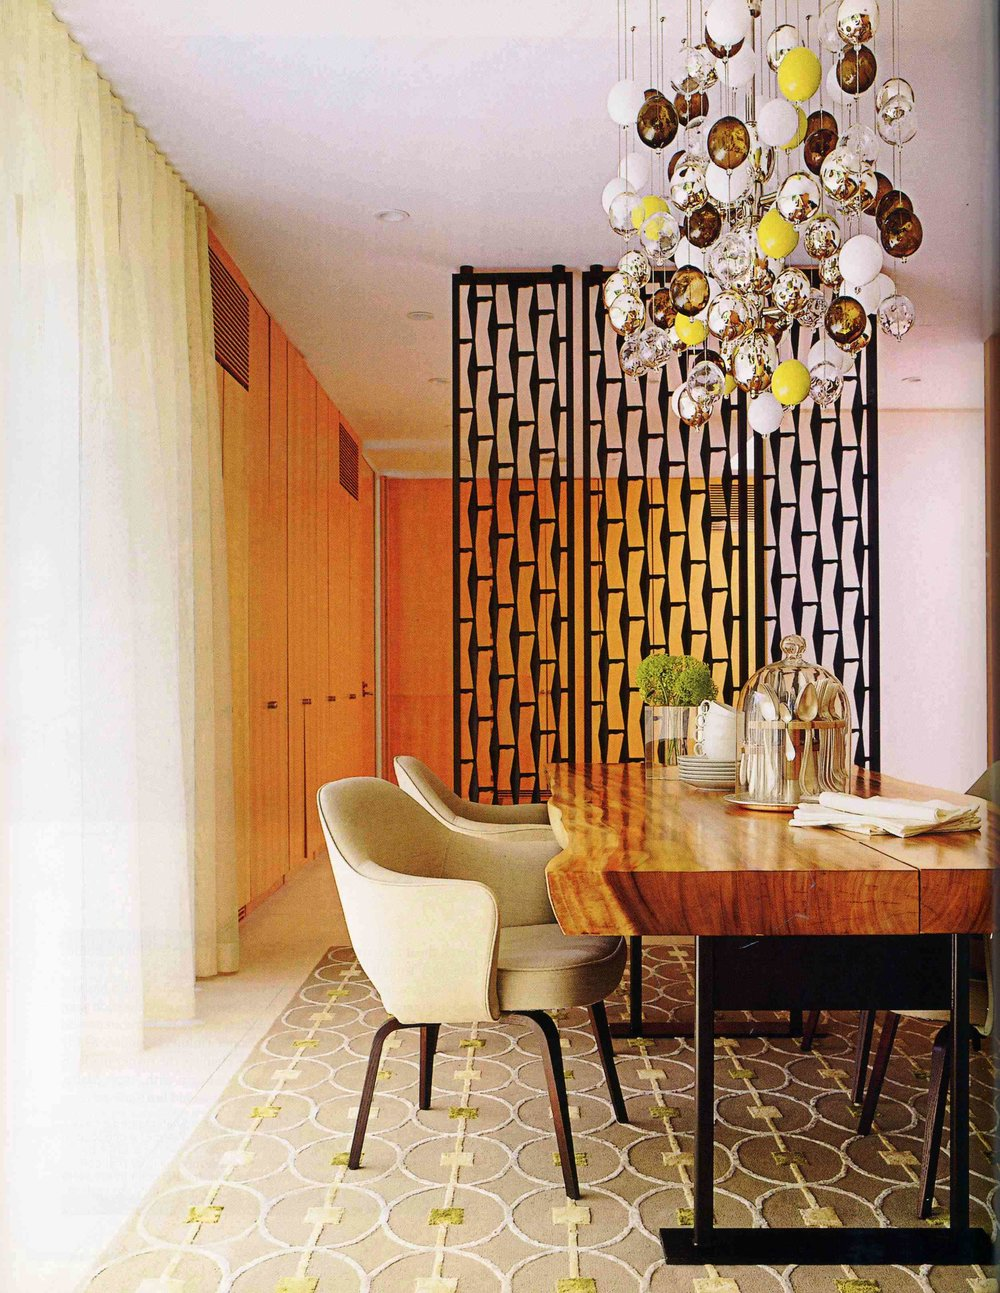 Met Home_Nov 08_Hamptons House_Full Article_Page_08.jpg